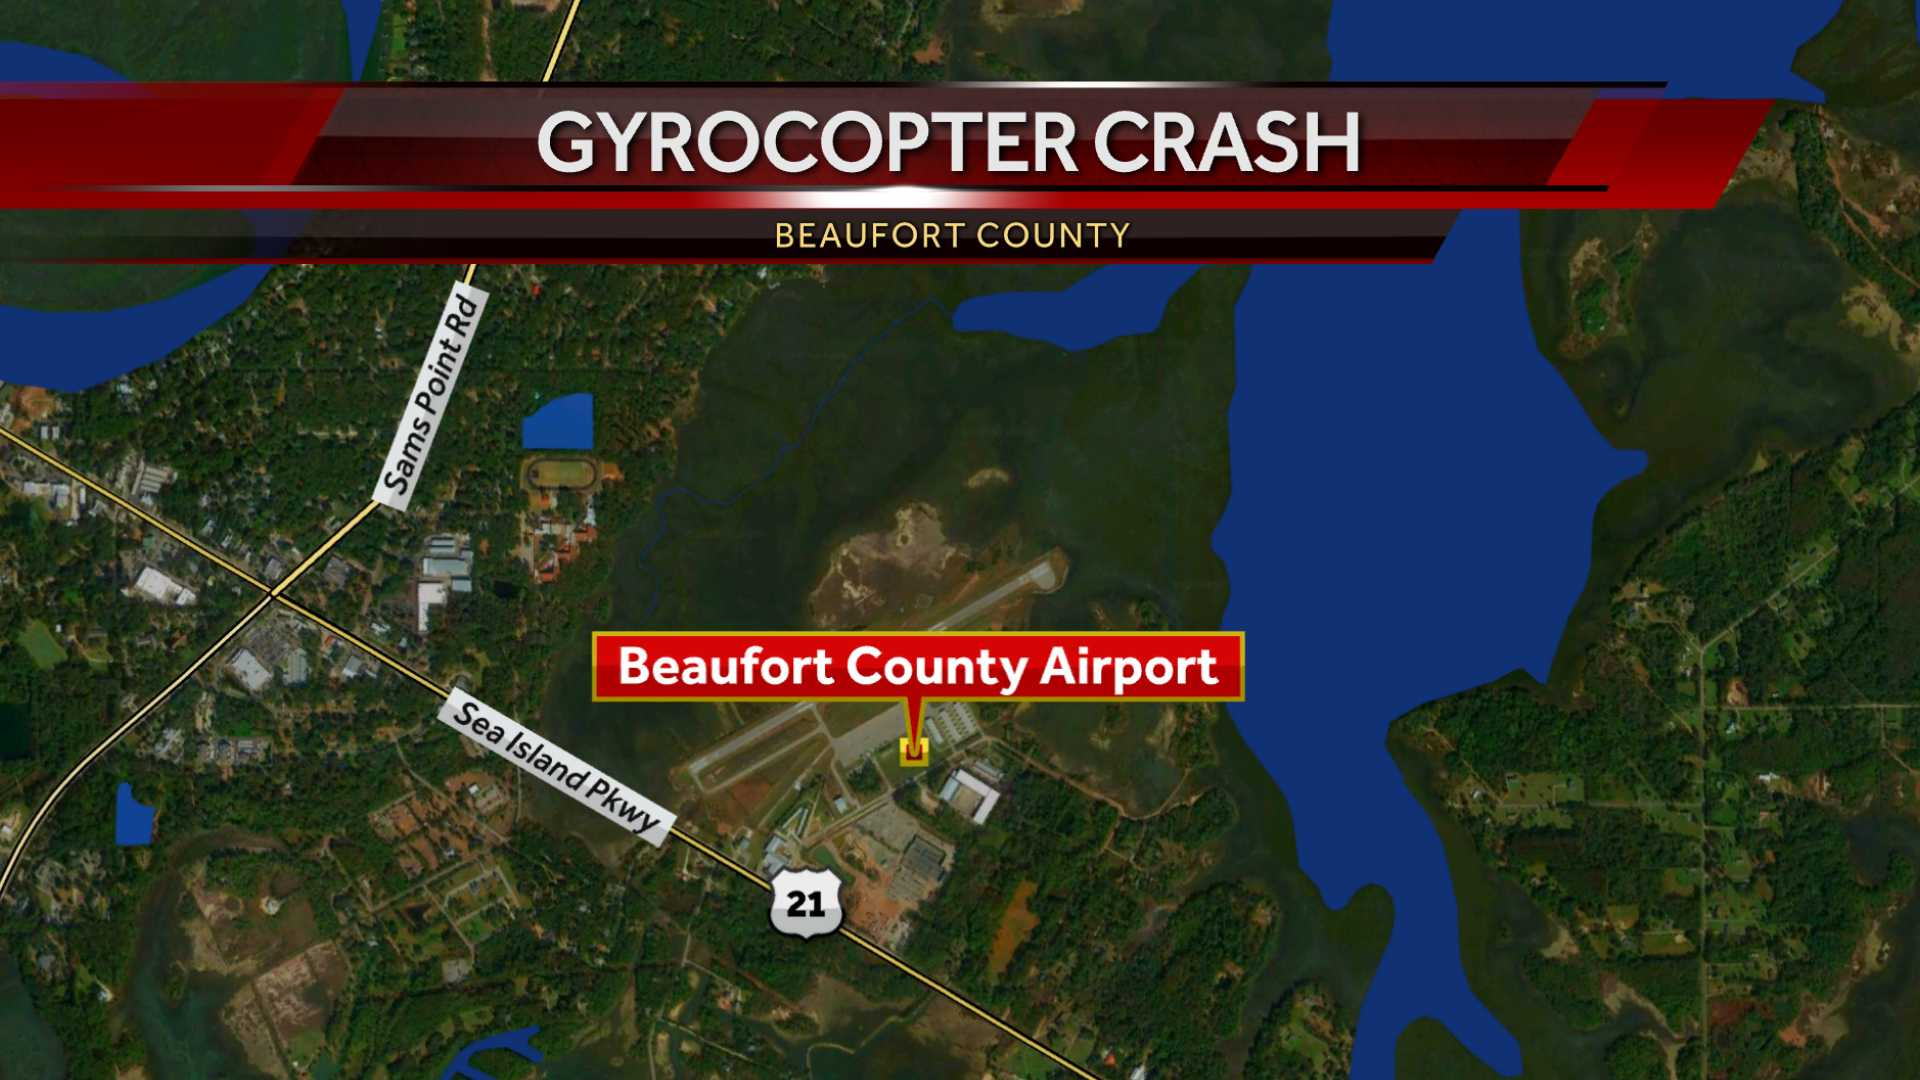 FAA & NTSB responding to Gyrocopter crash at Lady's Island Airport